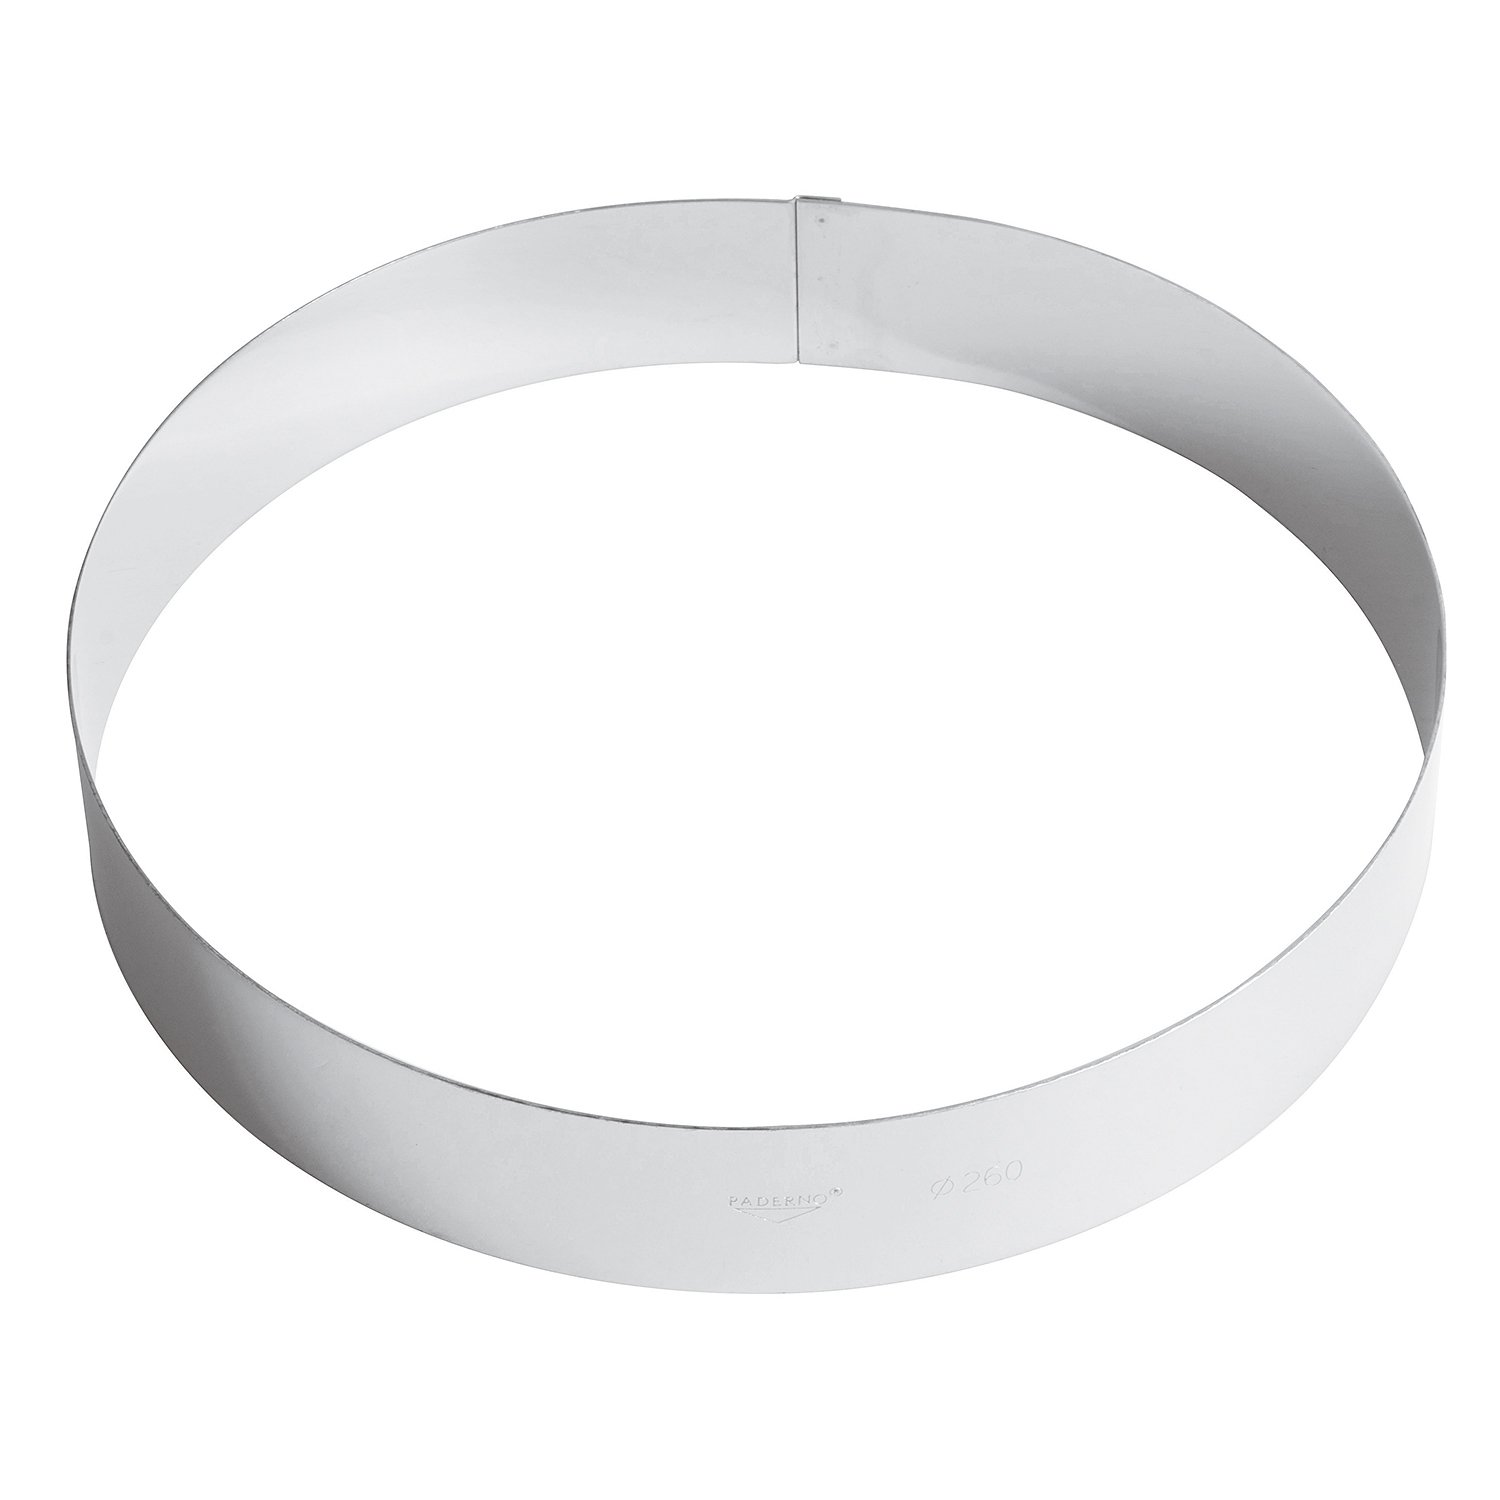 PADERNO - Mousse Ring S/Steel